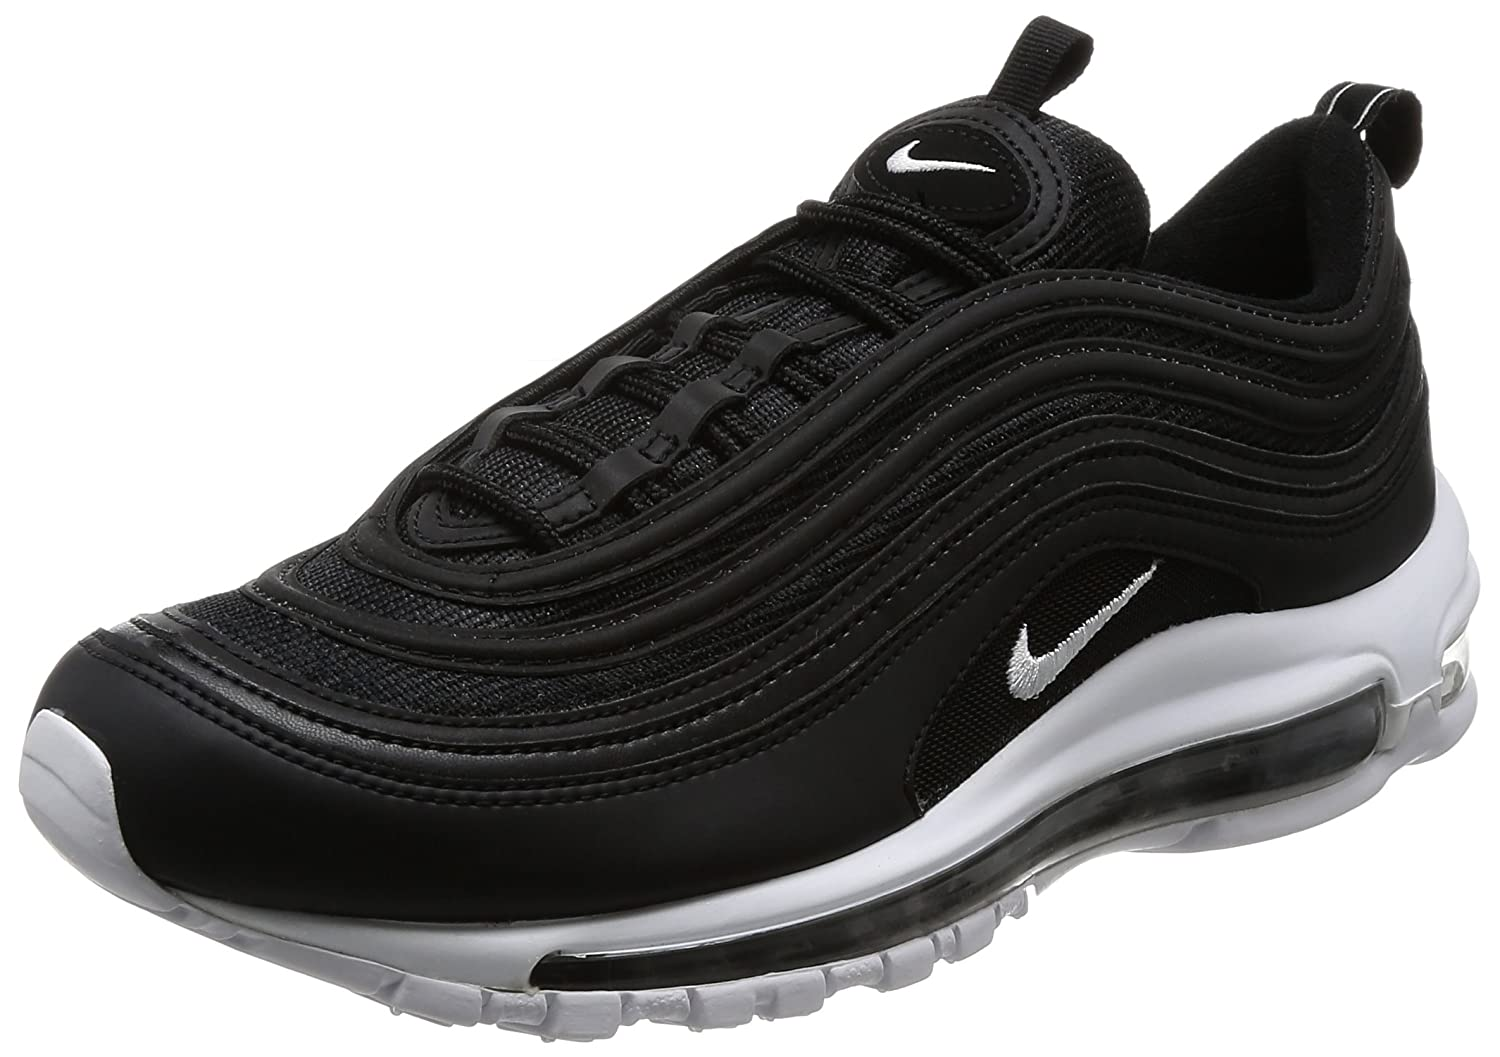 Nike AIR MAX 97 Mens Sneakers 921826 001